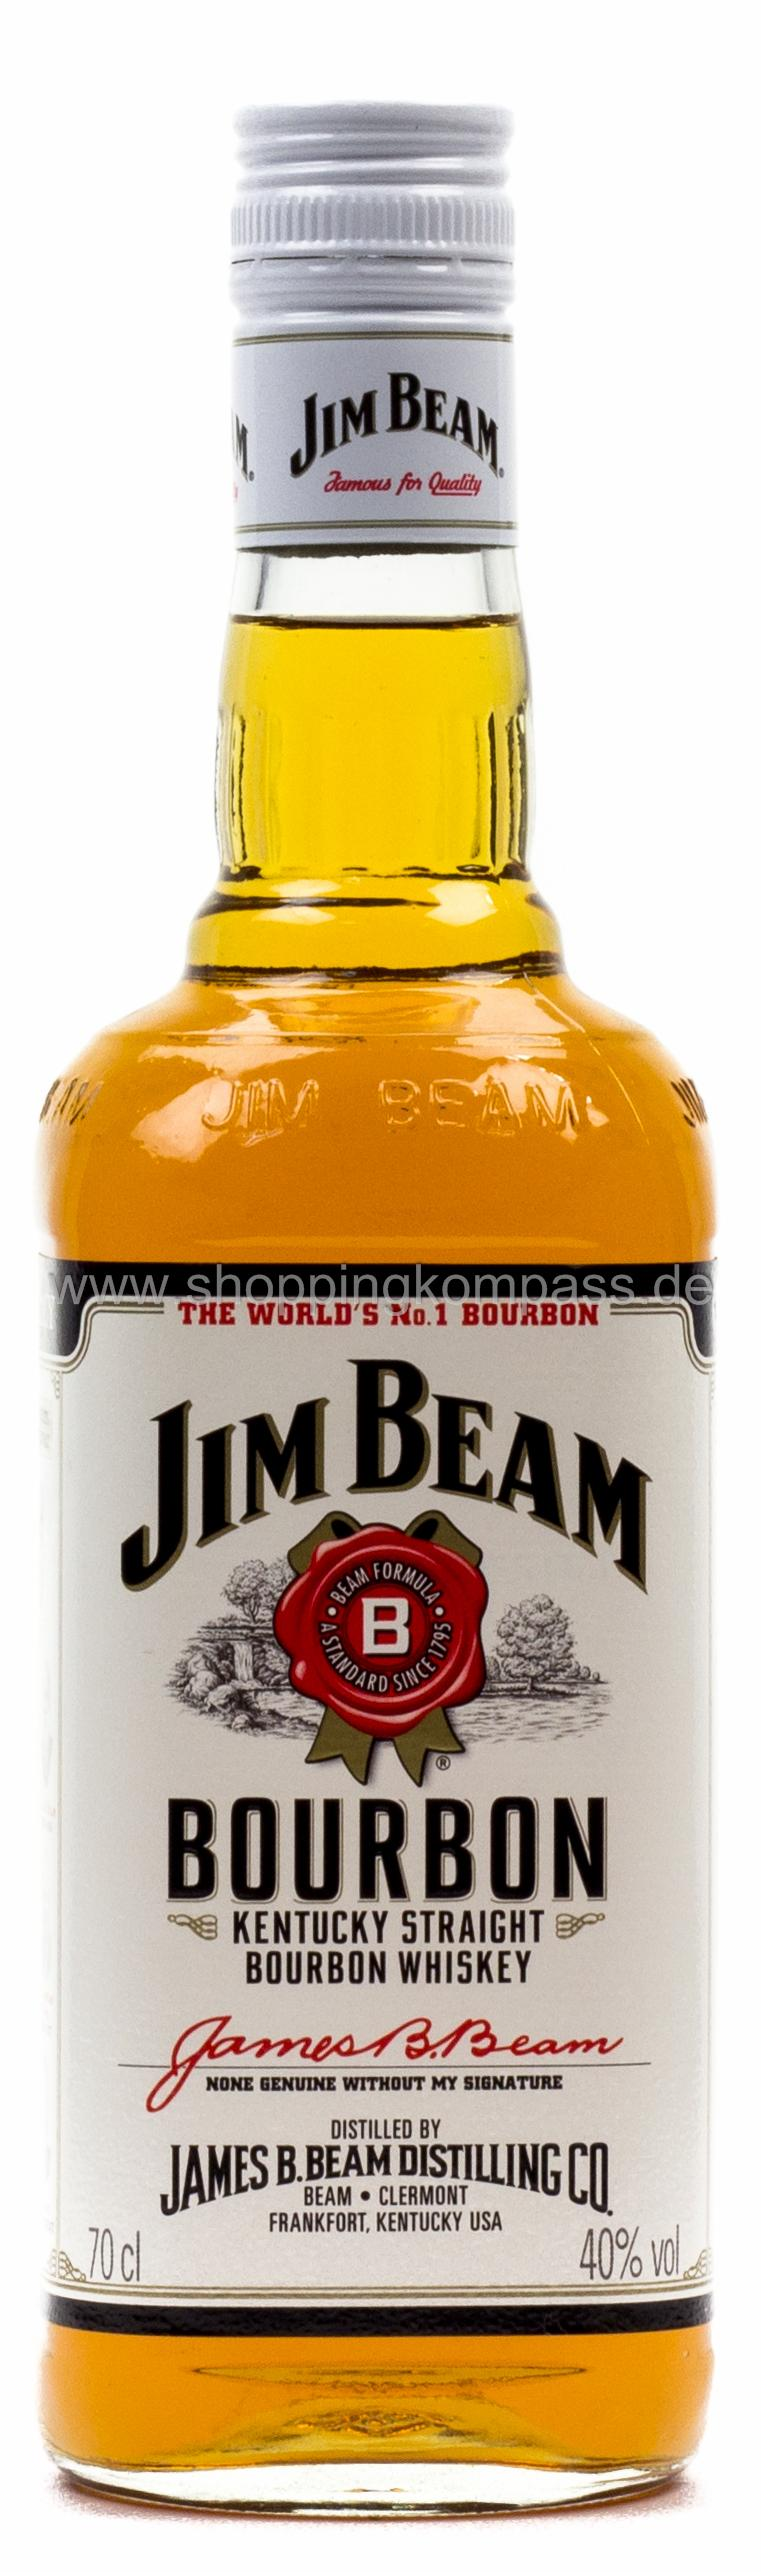 Jim Beam Kentucky Straight Bourbon Whiskey 0,7 l